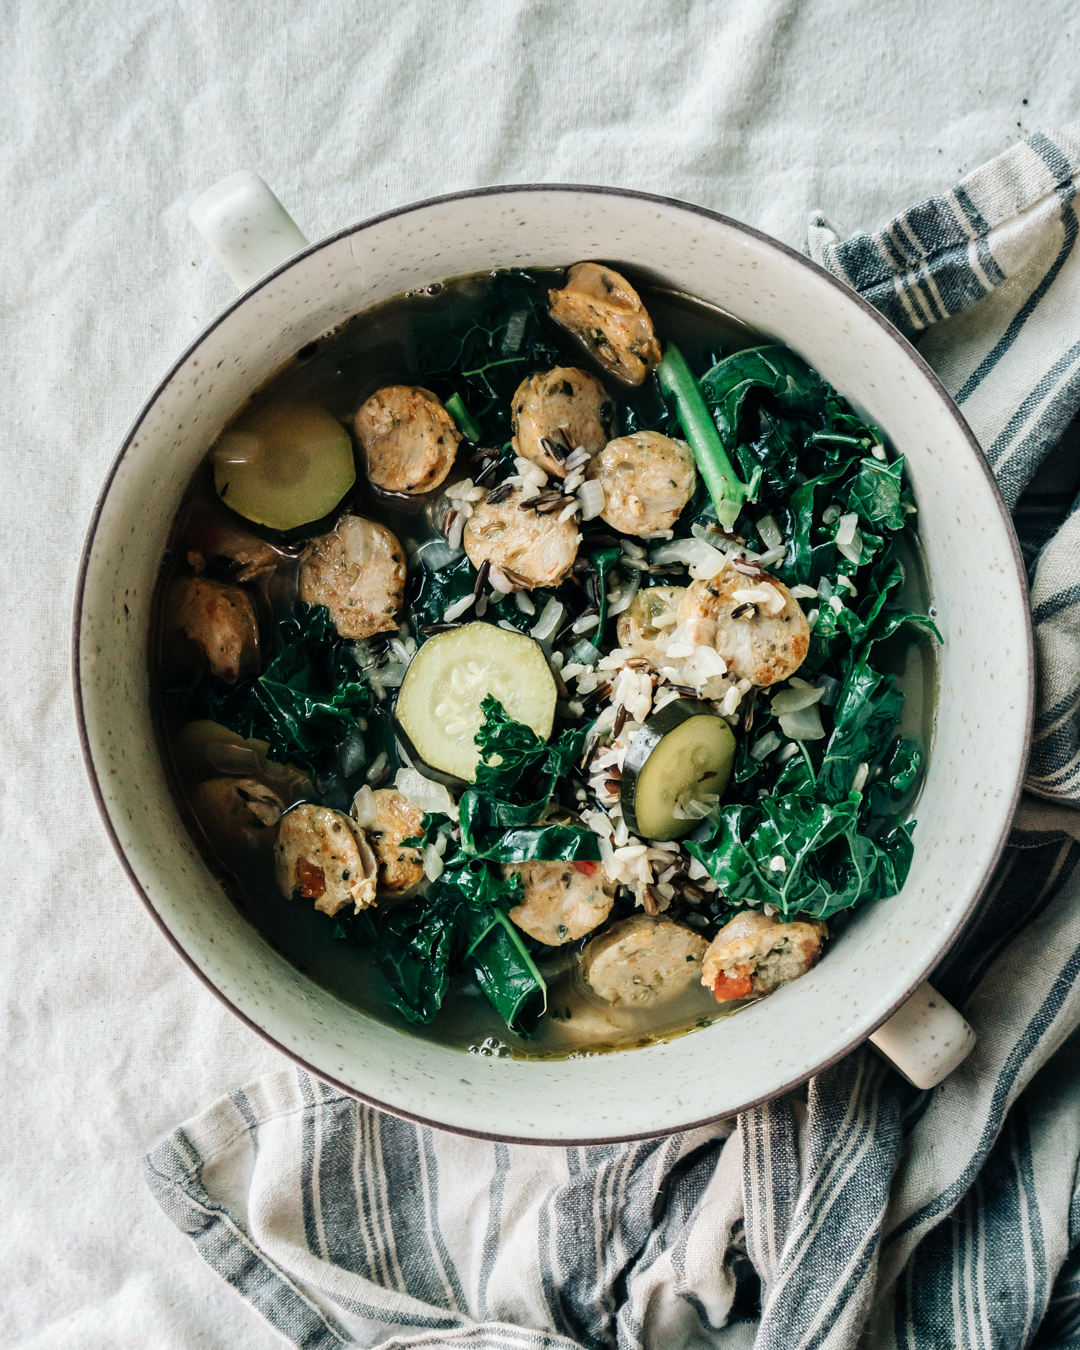 Zucchini, Sausage, Wild Rice and Kale Soup